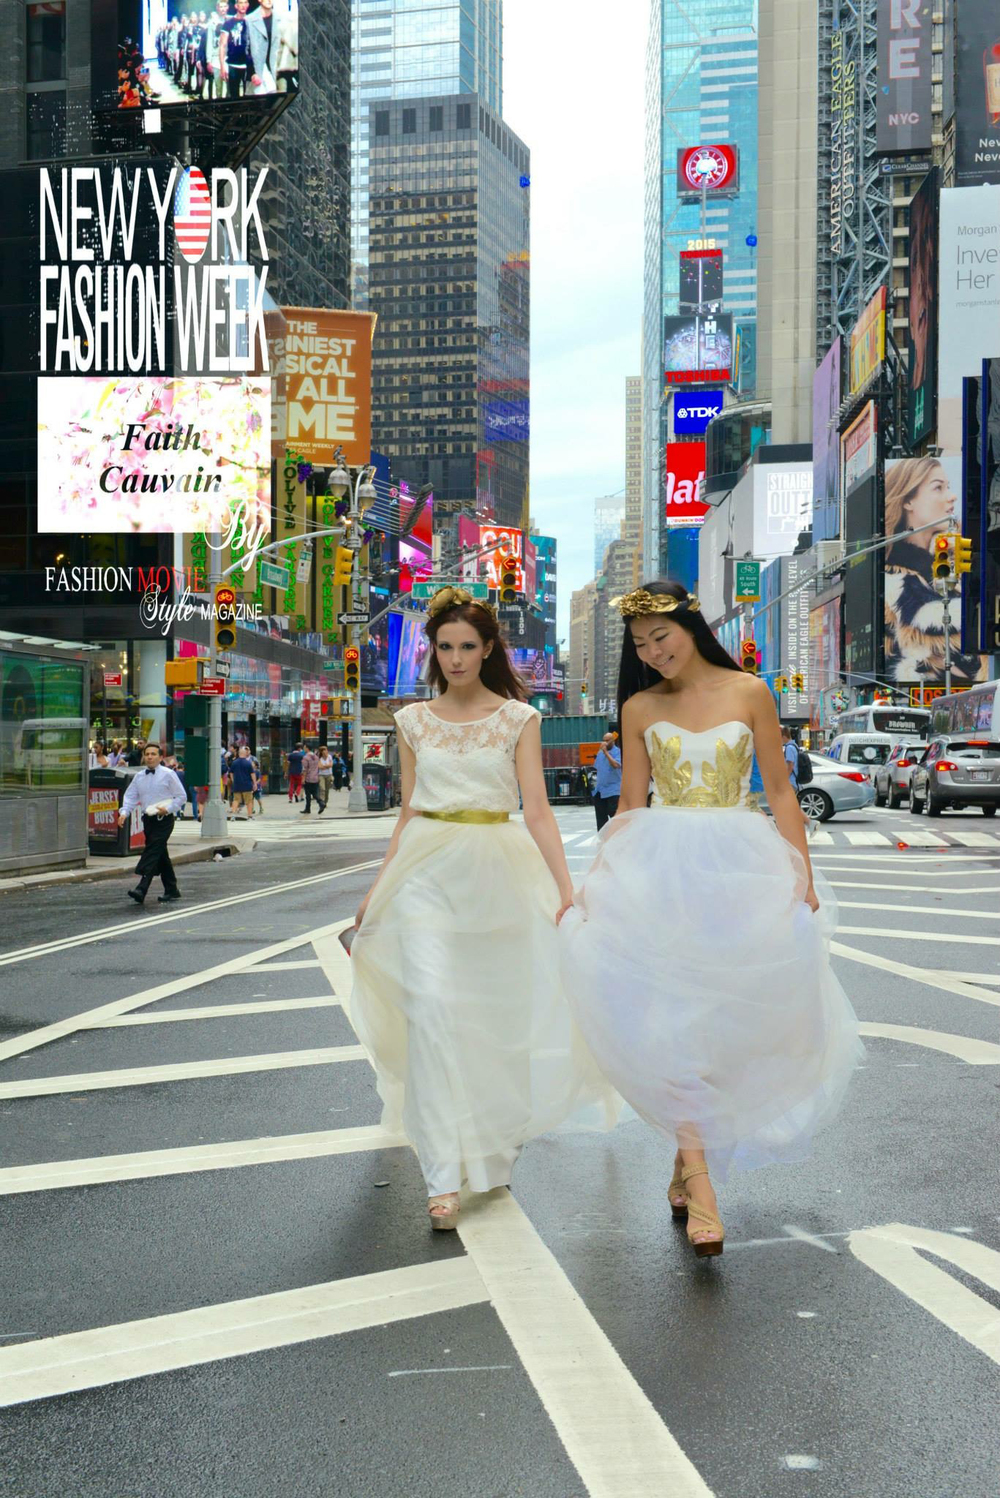 Times Square Duo Photo Shoot (Angels) September 2015 Professional Photo (12).jpg